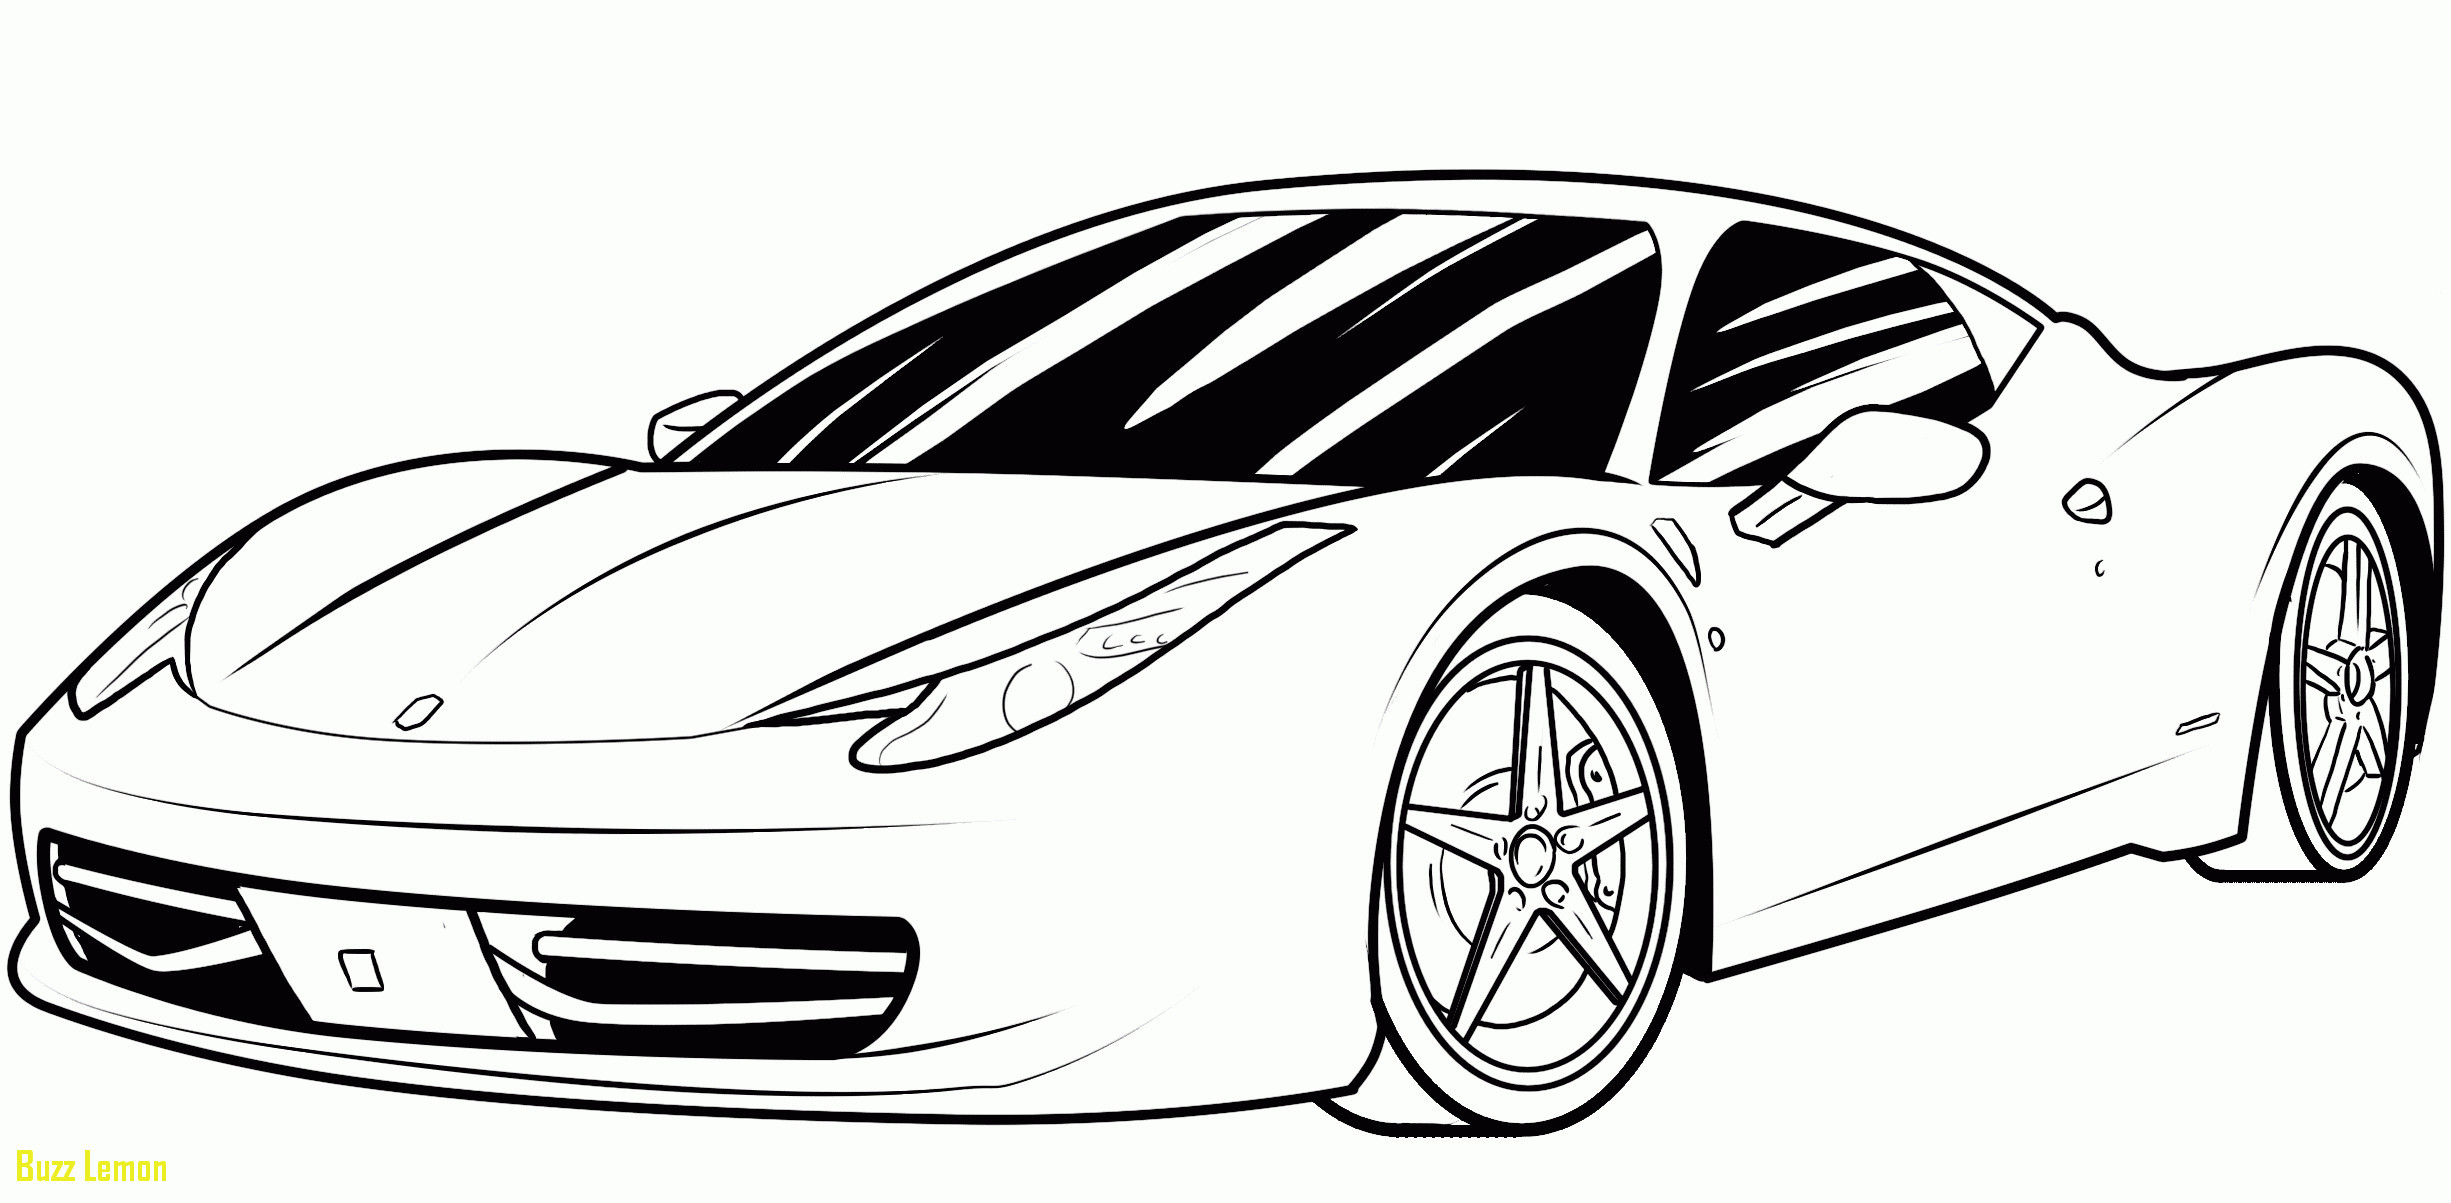 Ferrari Coloring Pages For Kids  Ferrari Coloring Sheet thekindproject